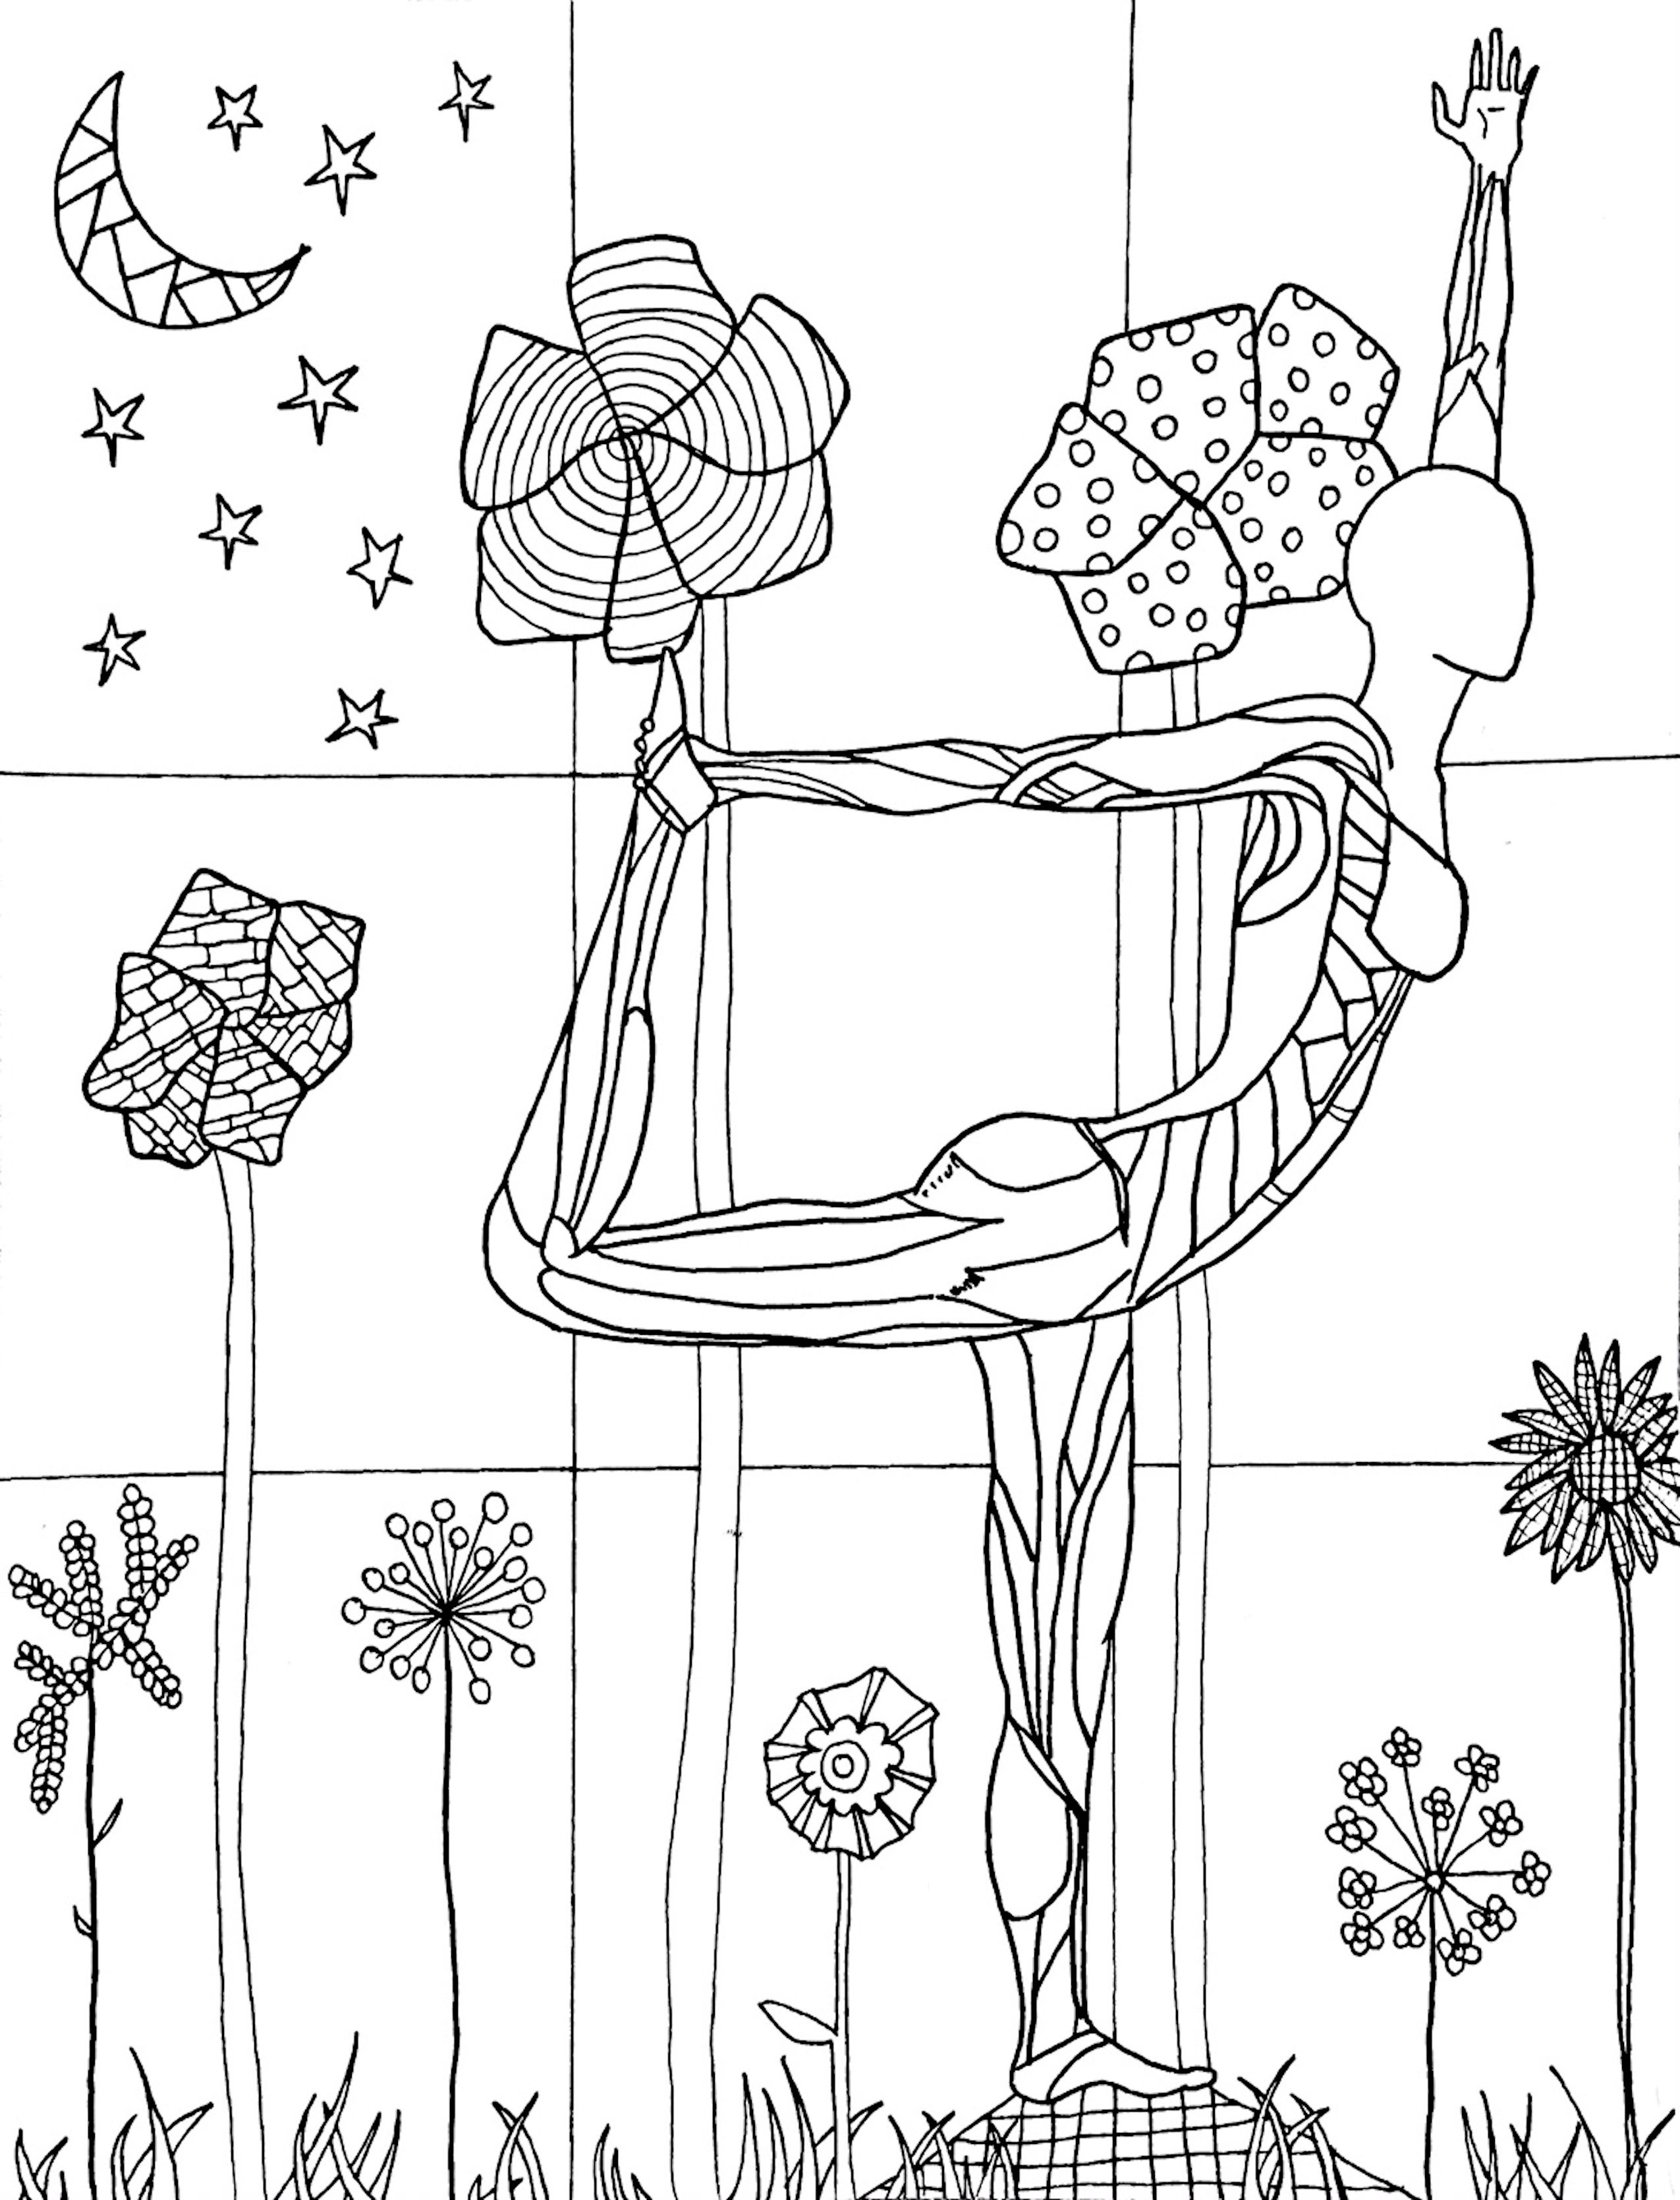 A Coloring Page From Yoga In Color A Yoga Anatomy Coloring Exploration Great Coloring Book For Anatom Anatomy Coloring Book Yoga Coloring Book Yoga Anatomy